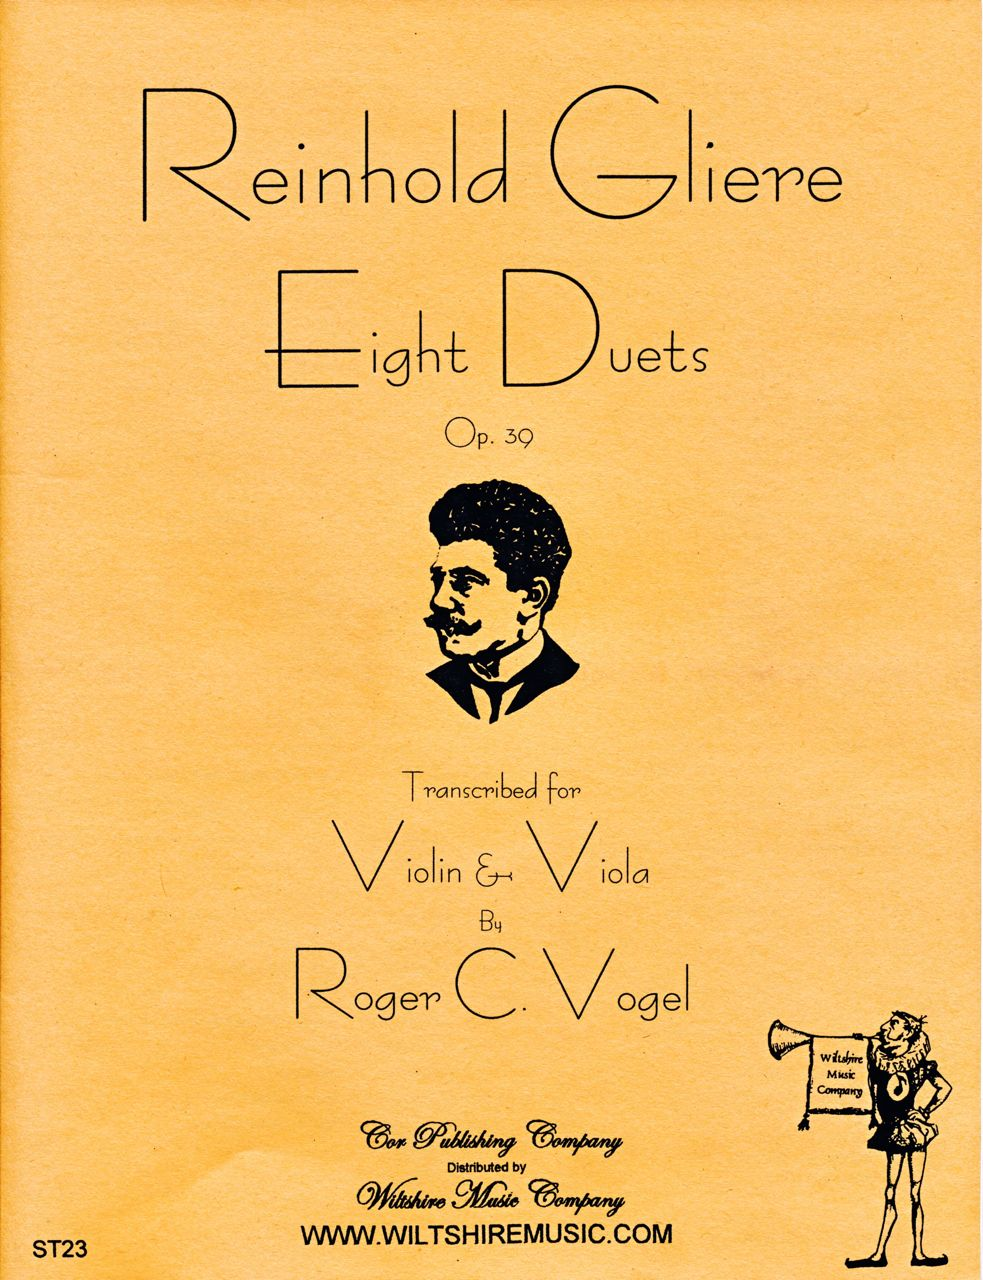 Eight Duets for Violin & Viola, R. Gliere (Vogel)